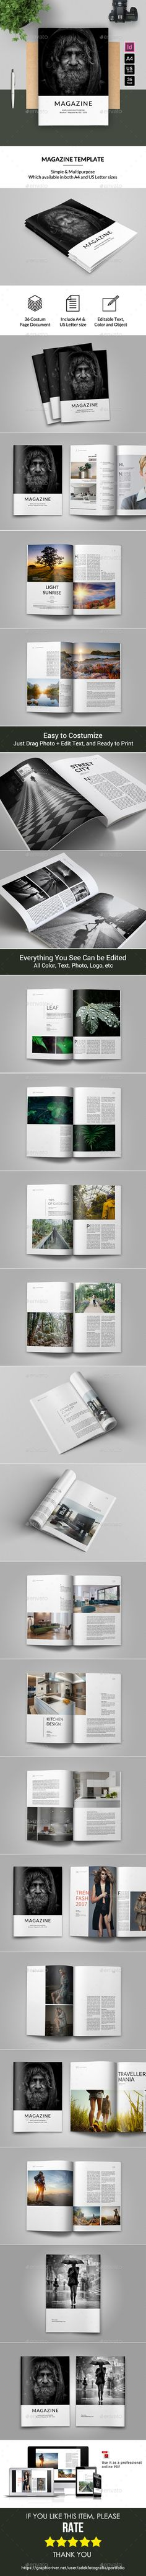 #Magazine Template - Magazines Print #Templates Download here: https://graphicriver.net/item/magazine-template/19696864?ref=alena994